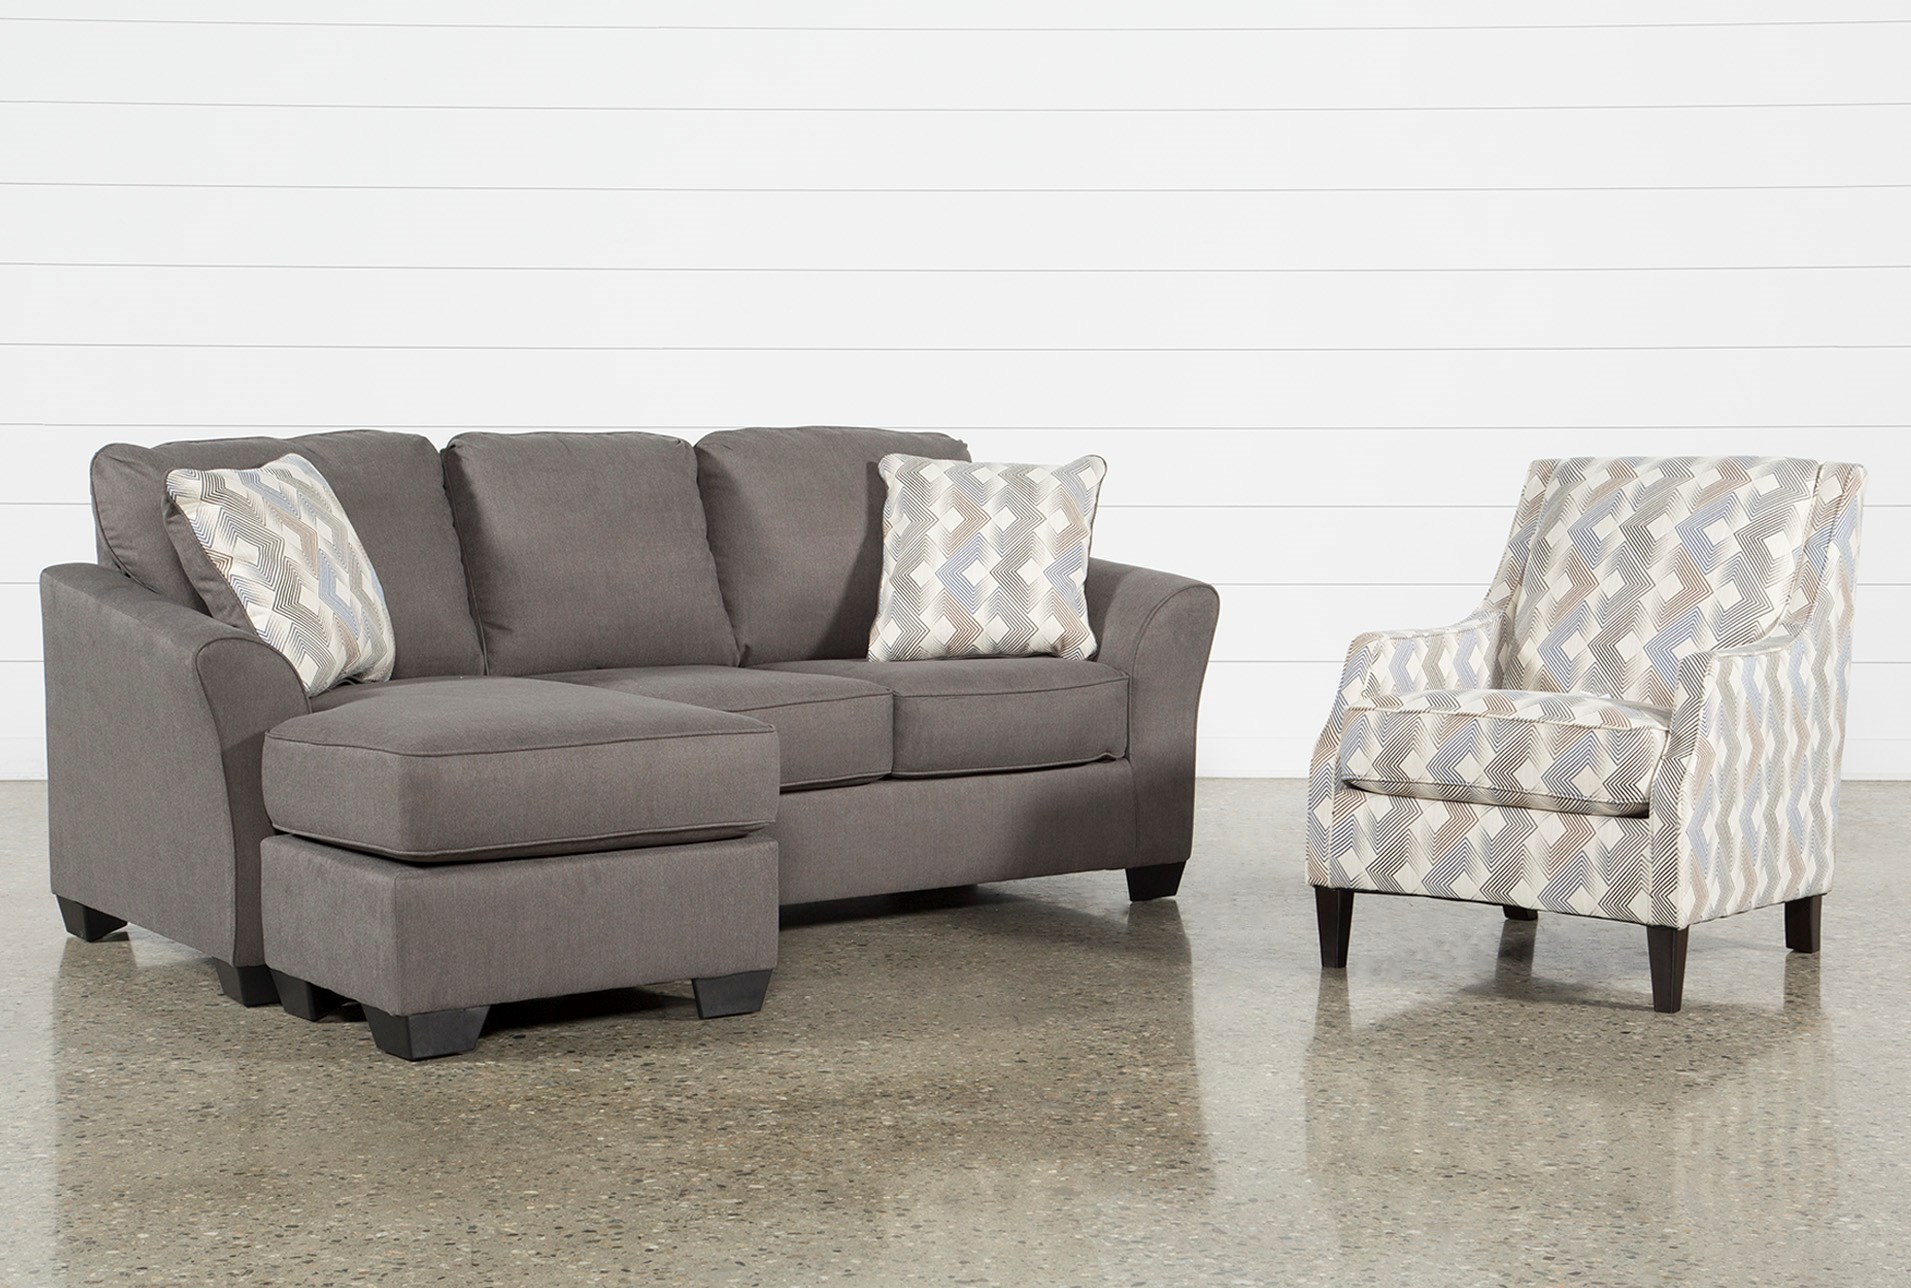 Living Room Chairs at Jordan\'s Furniture stores in MA, NH, RI and CT